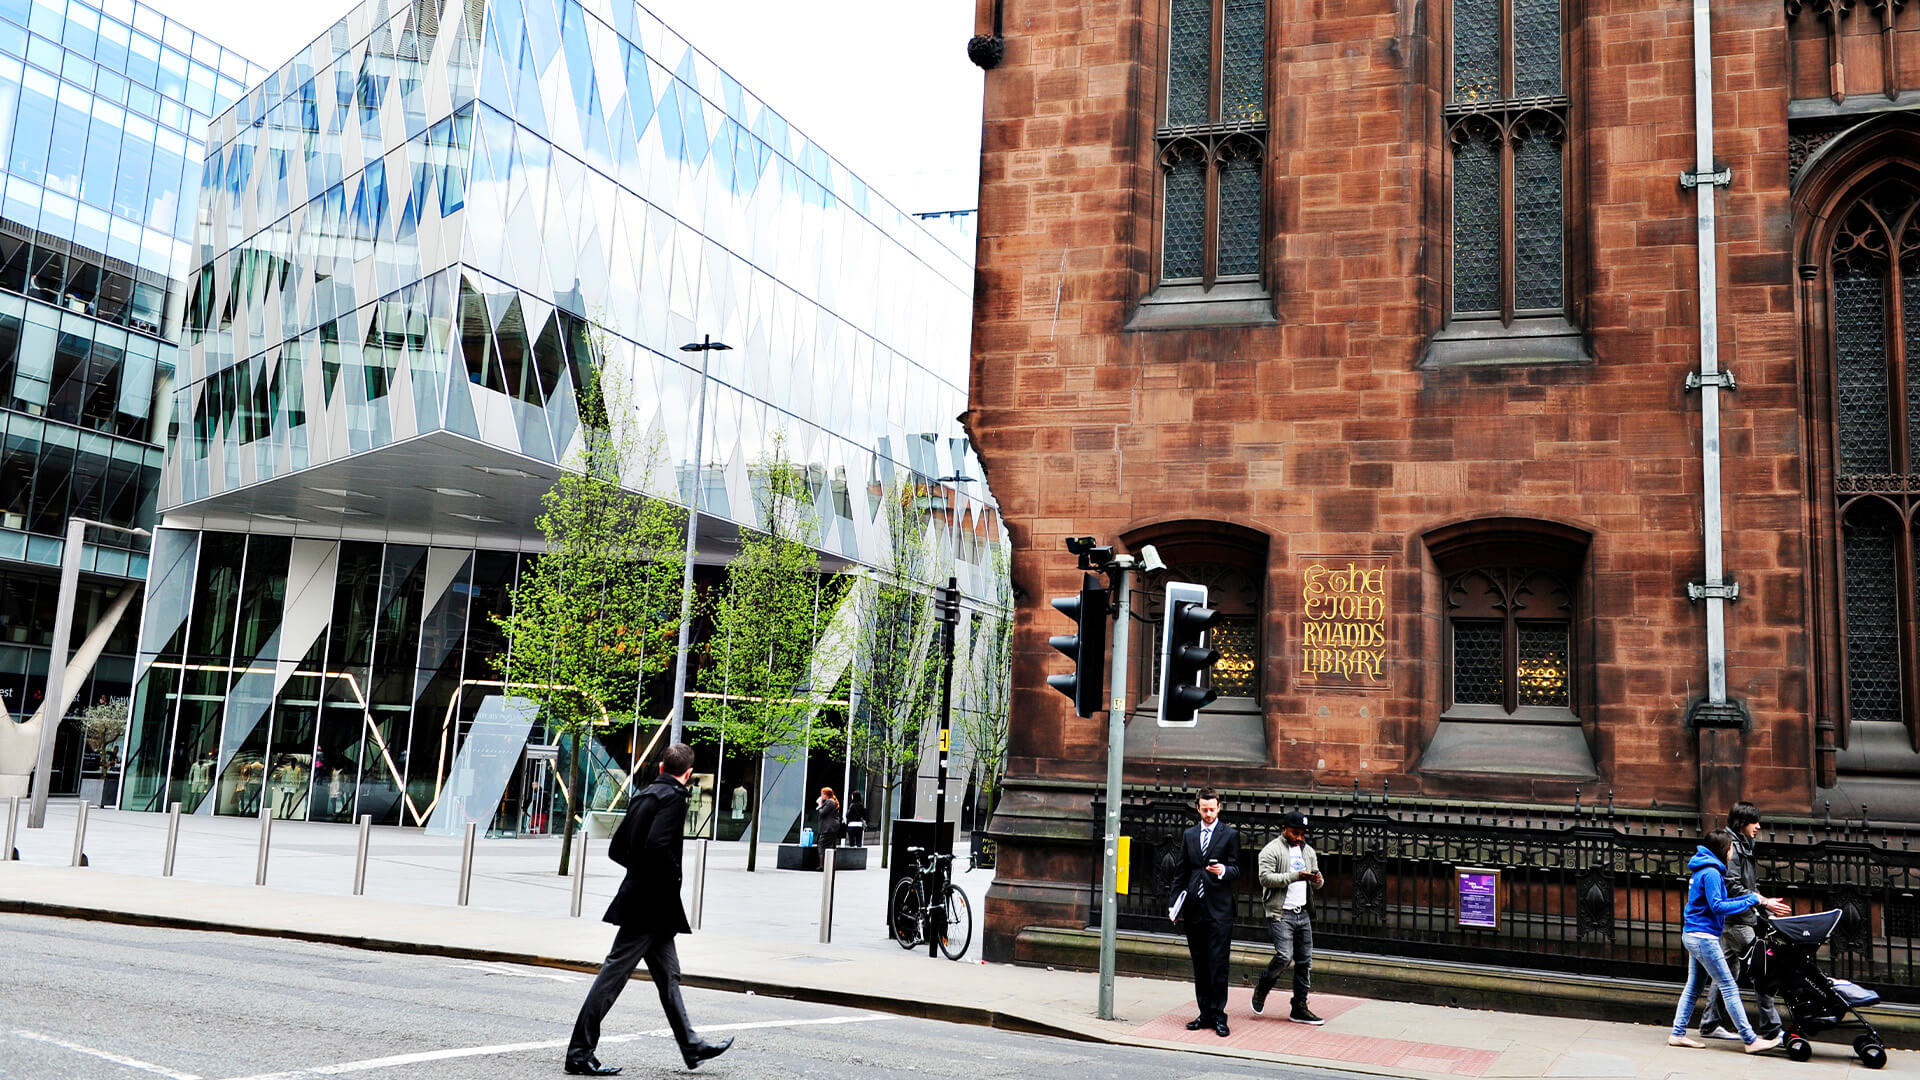 Historic and modern building on the University of Manchester campus